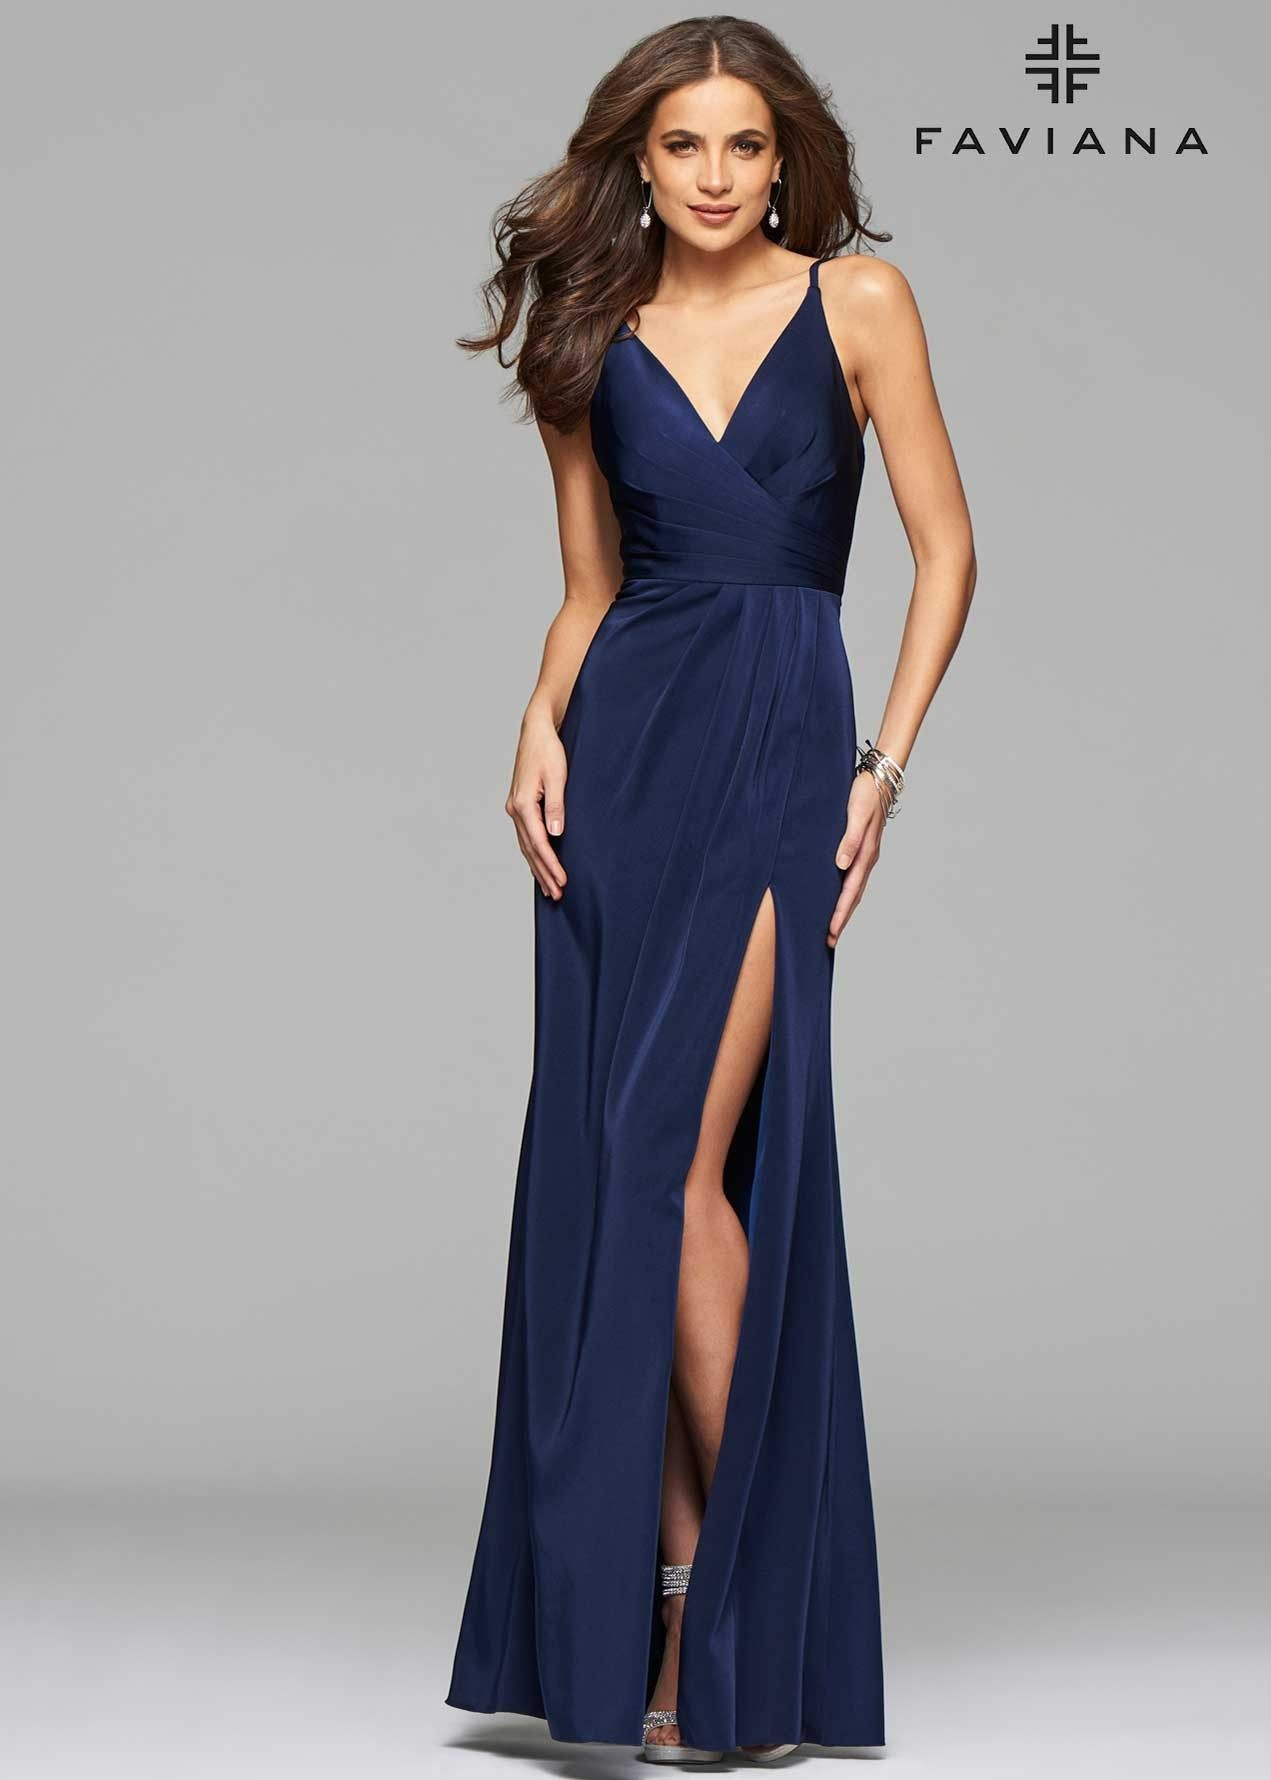 Faviana 7755 Faille Satin V-Neck Gown | Satin, Navy and Gowns